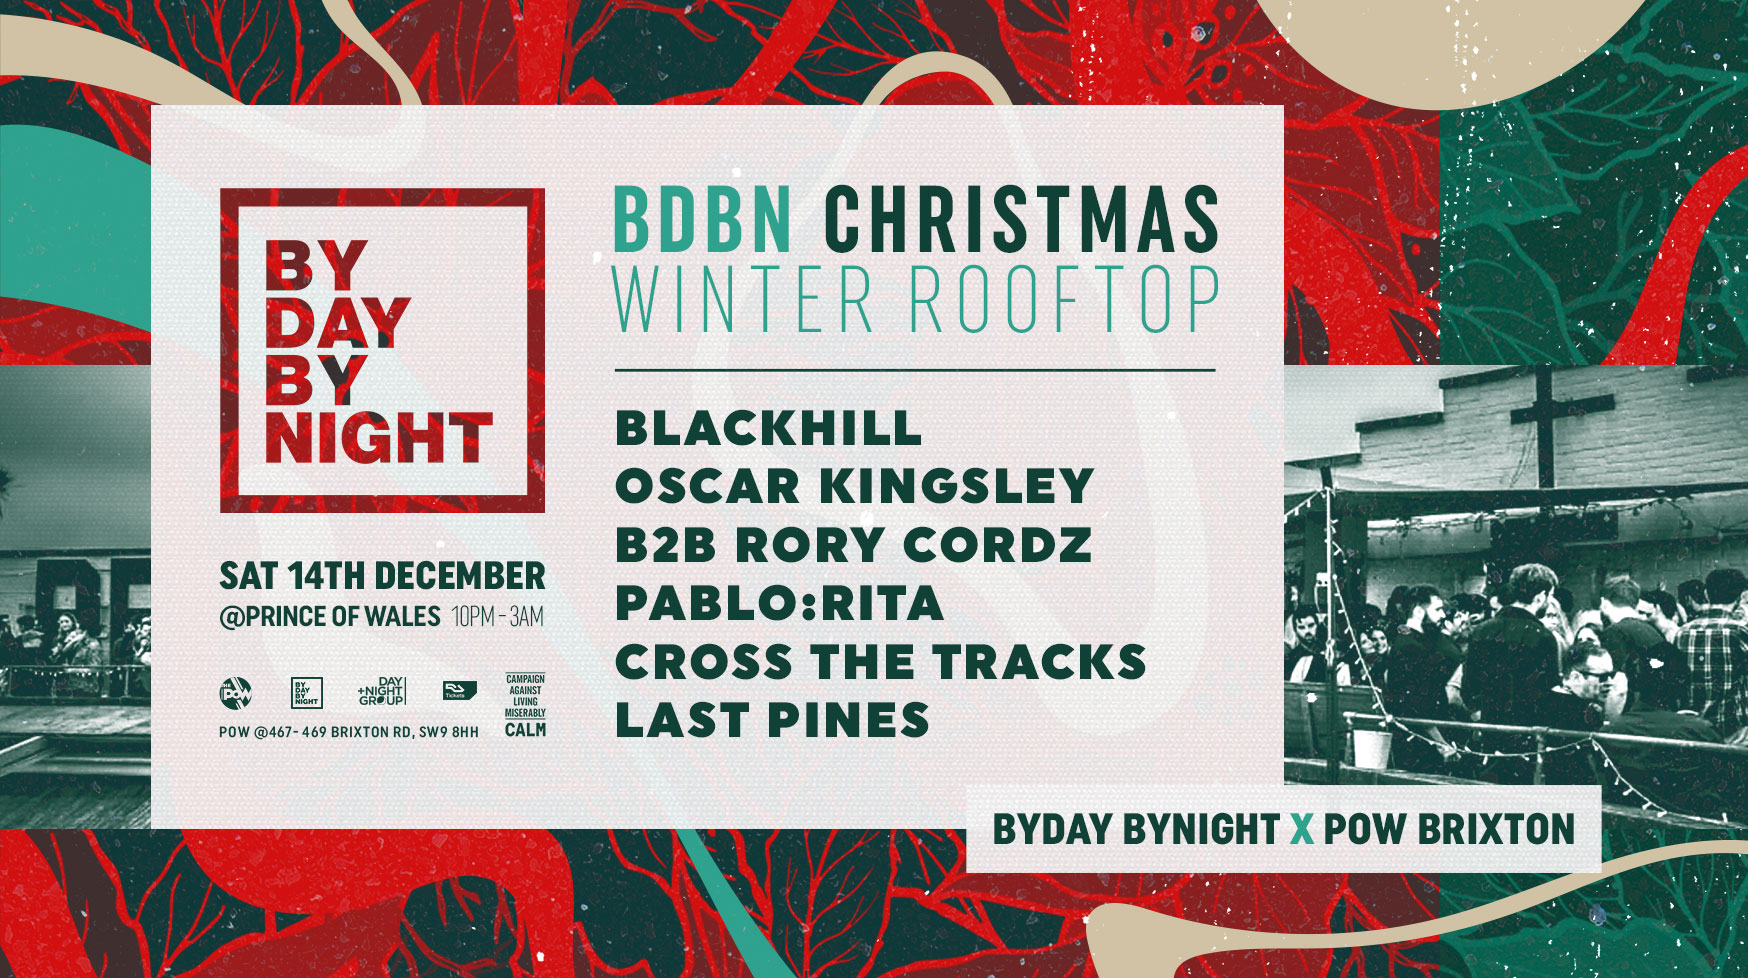 Byday Bynight: Festive Rooftop Party Brixton